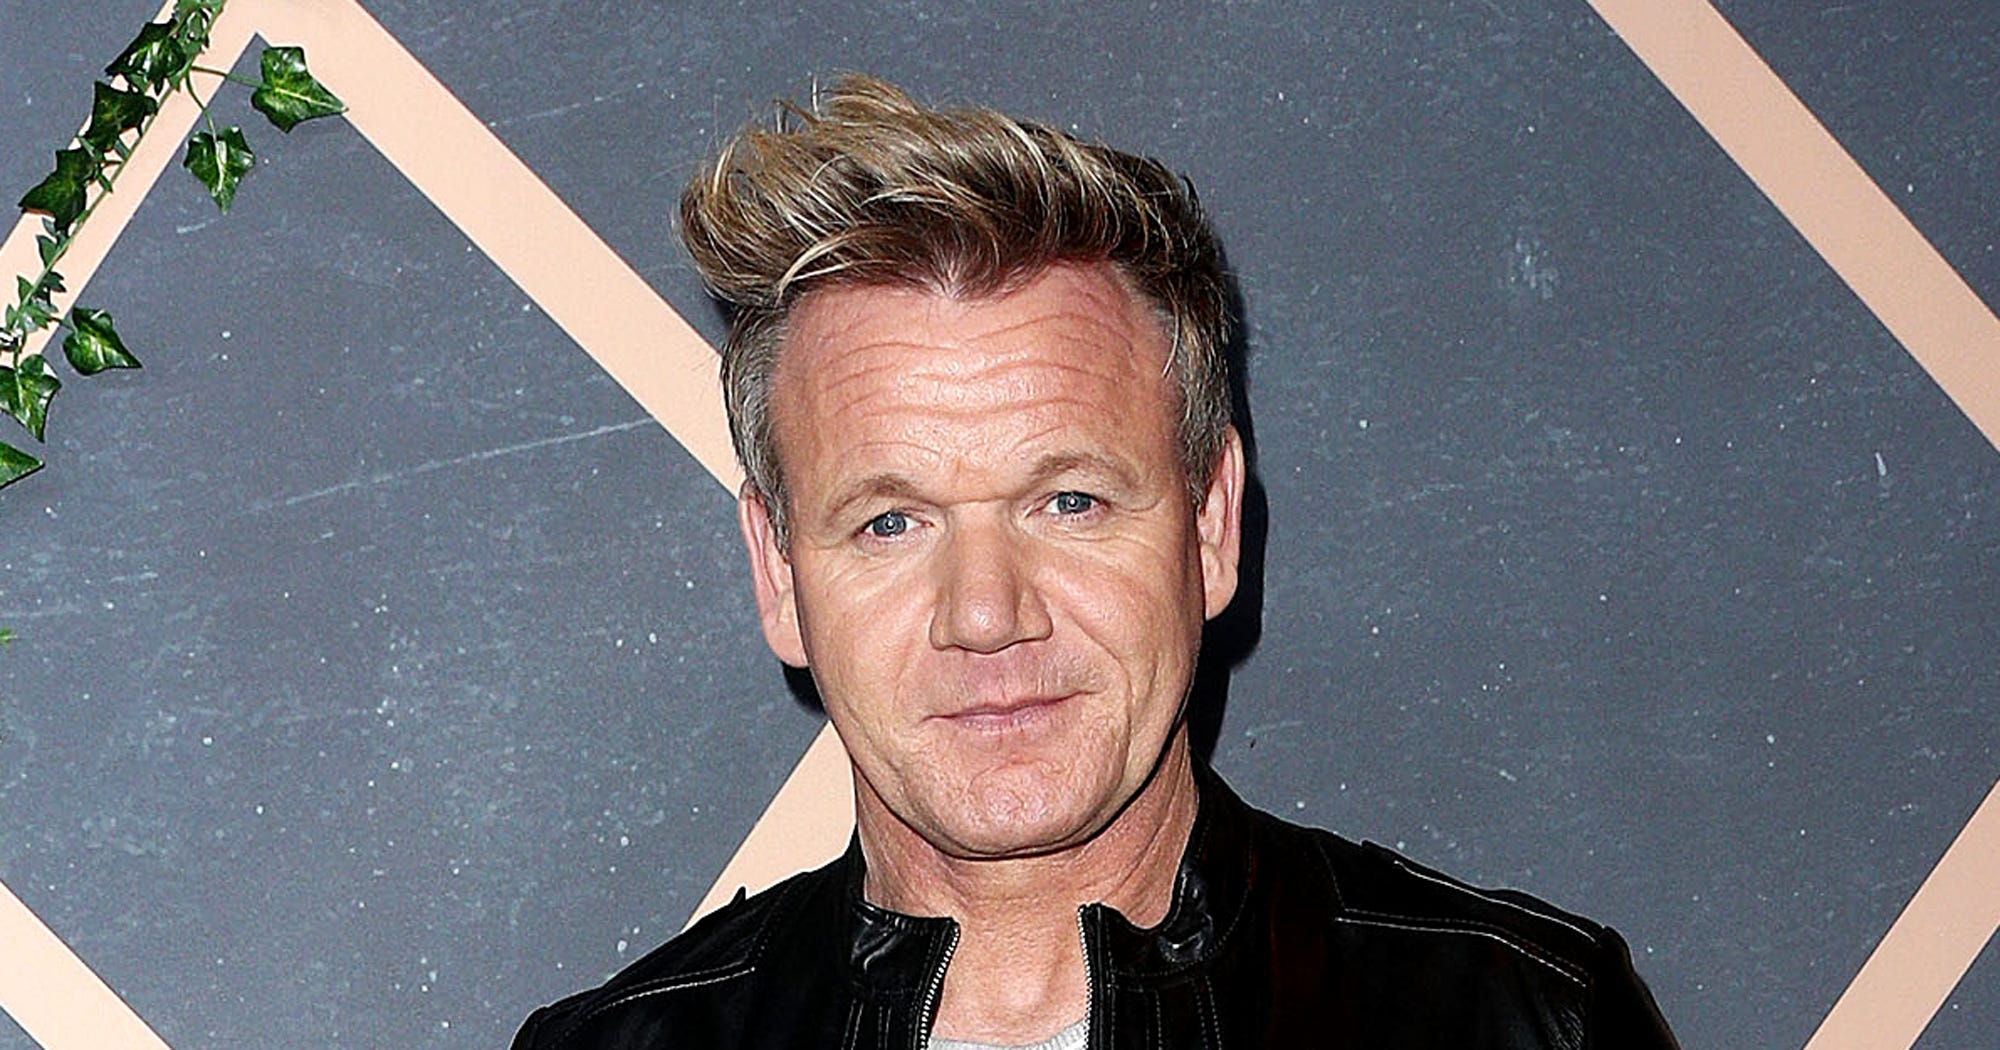 Gordon ramsay new show is 24 hours to hell and back - Gordon ramsay shows ...